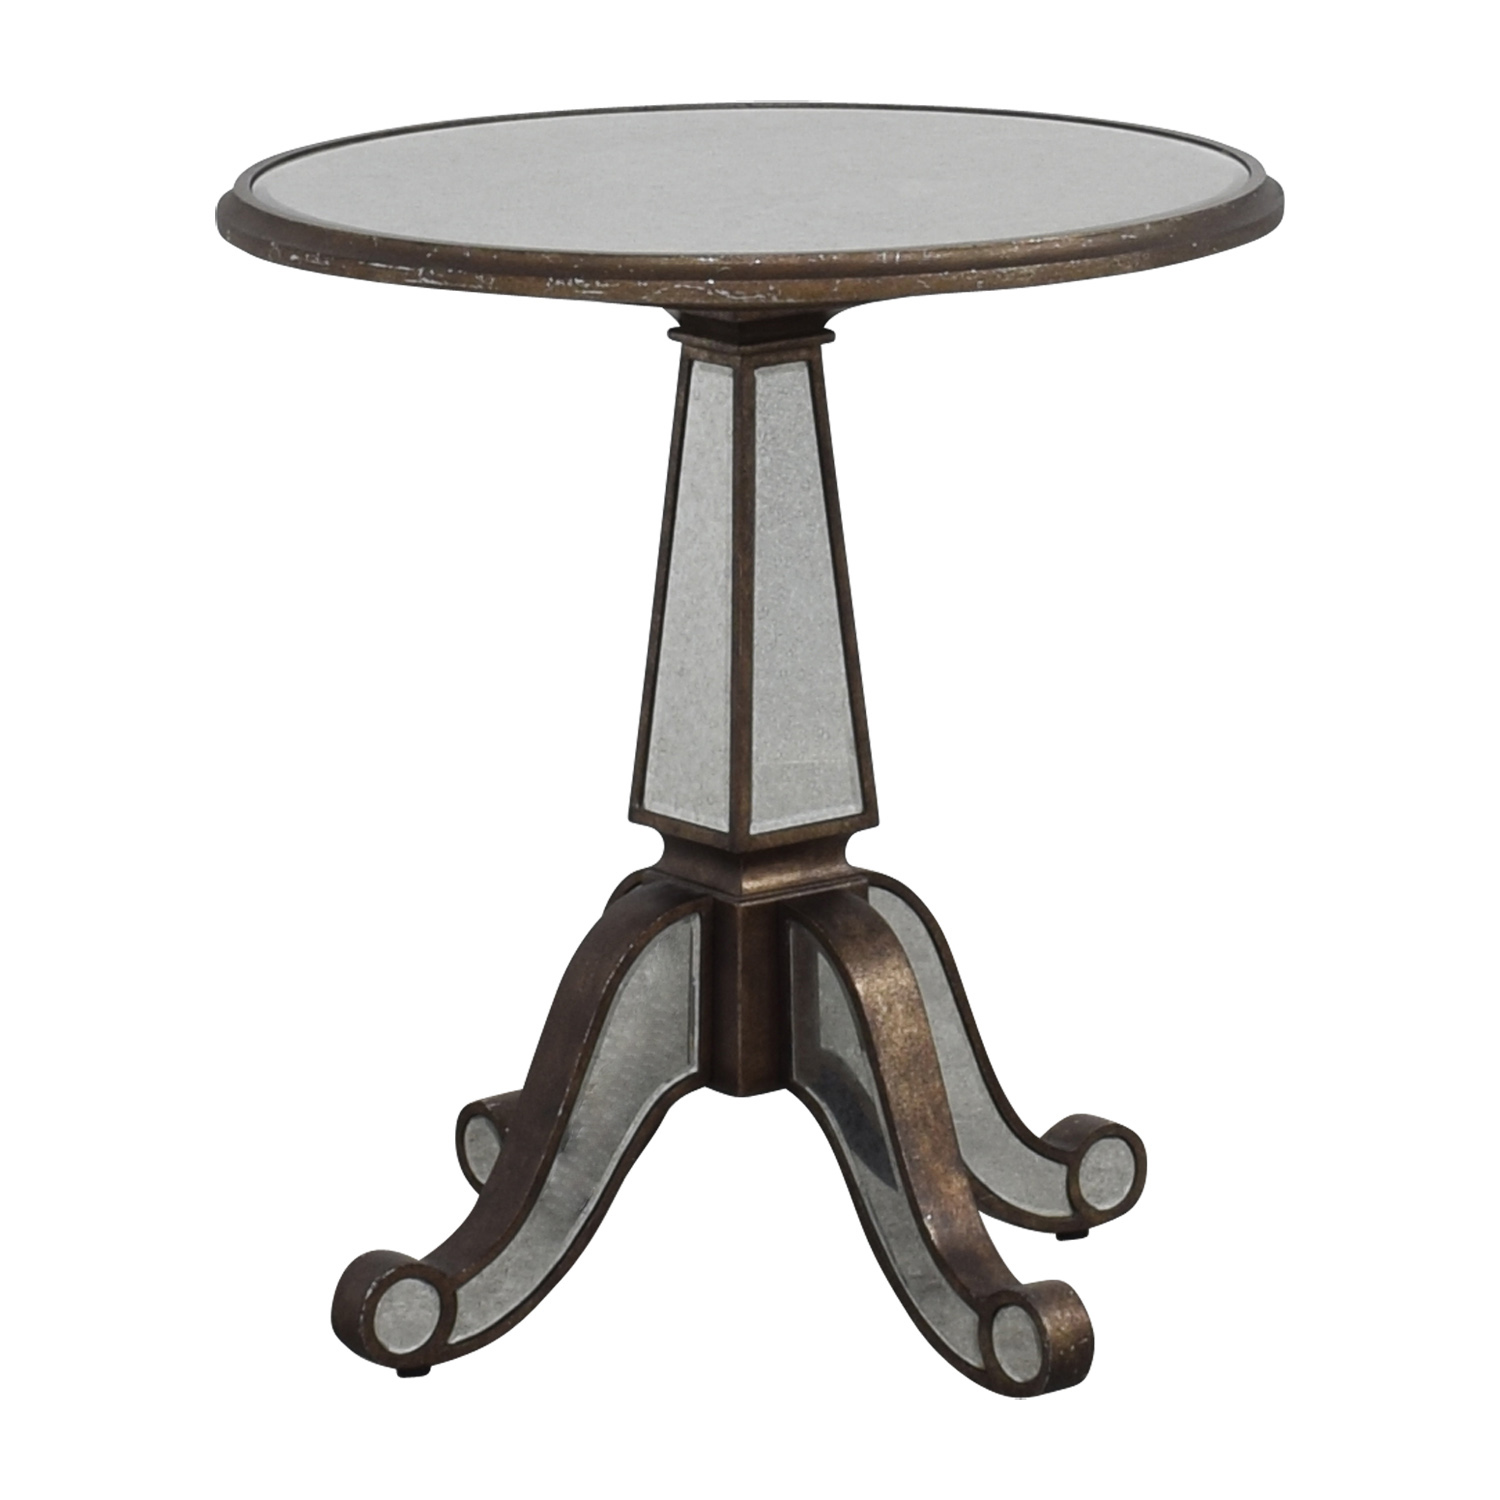 buy Horchow Horchow Michelle Round Mirrored Table online